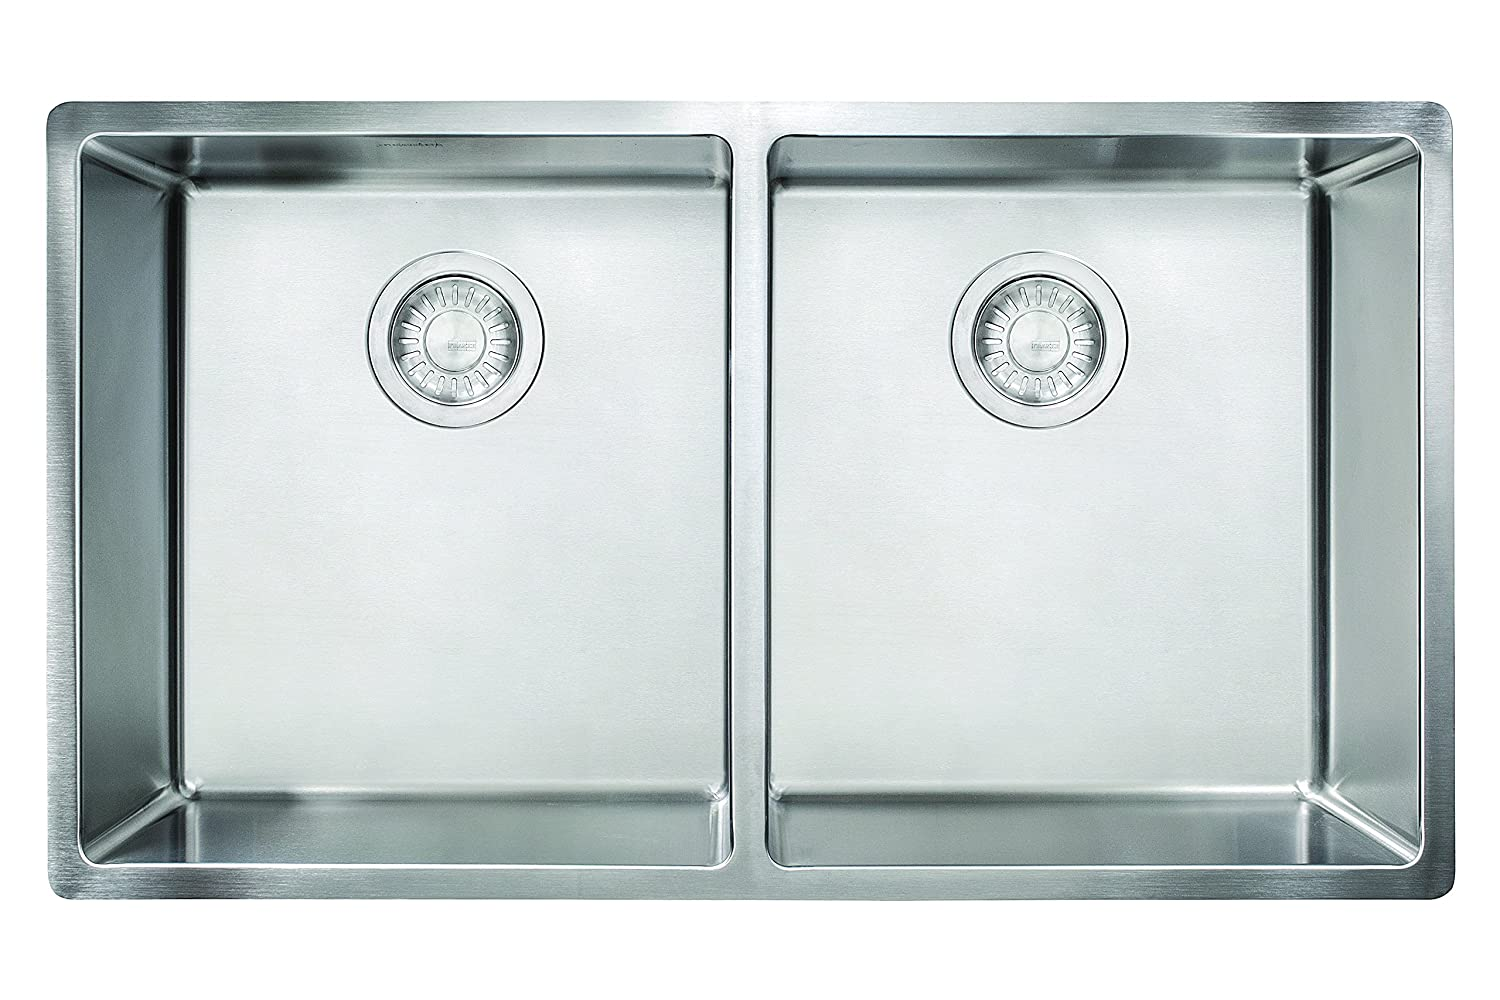 Franke Kitchen Sinks South Africa Selecting Your Perfect